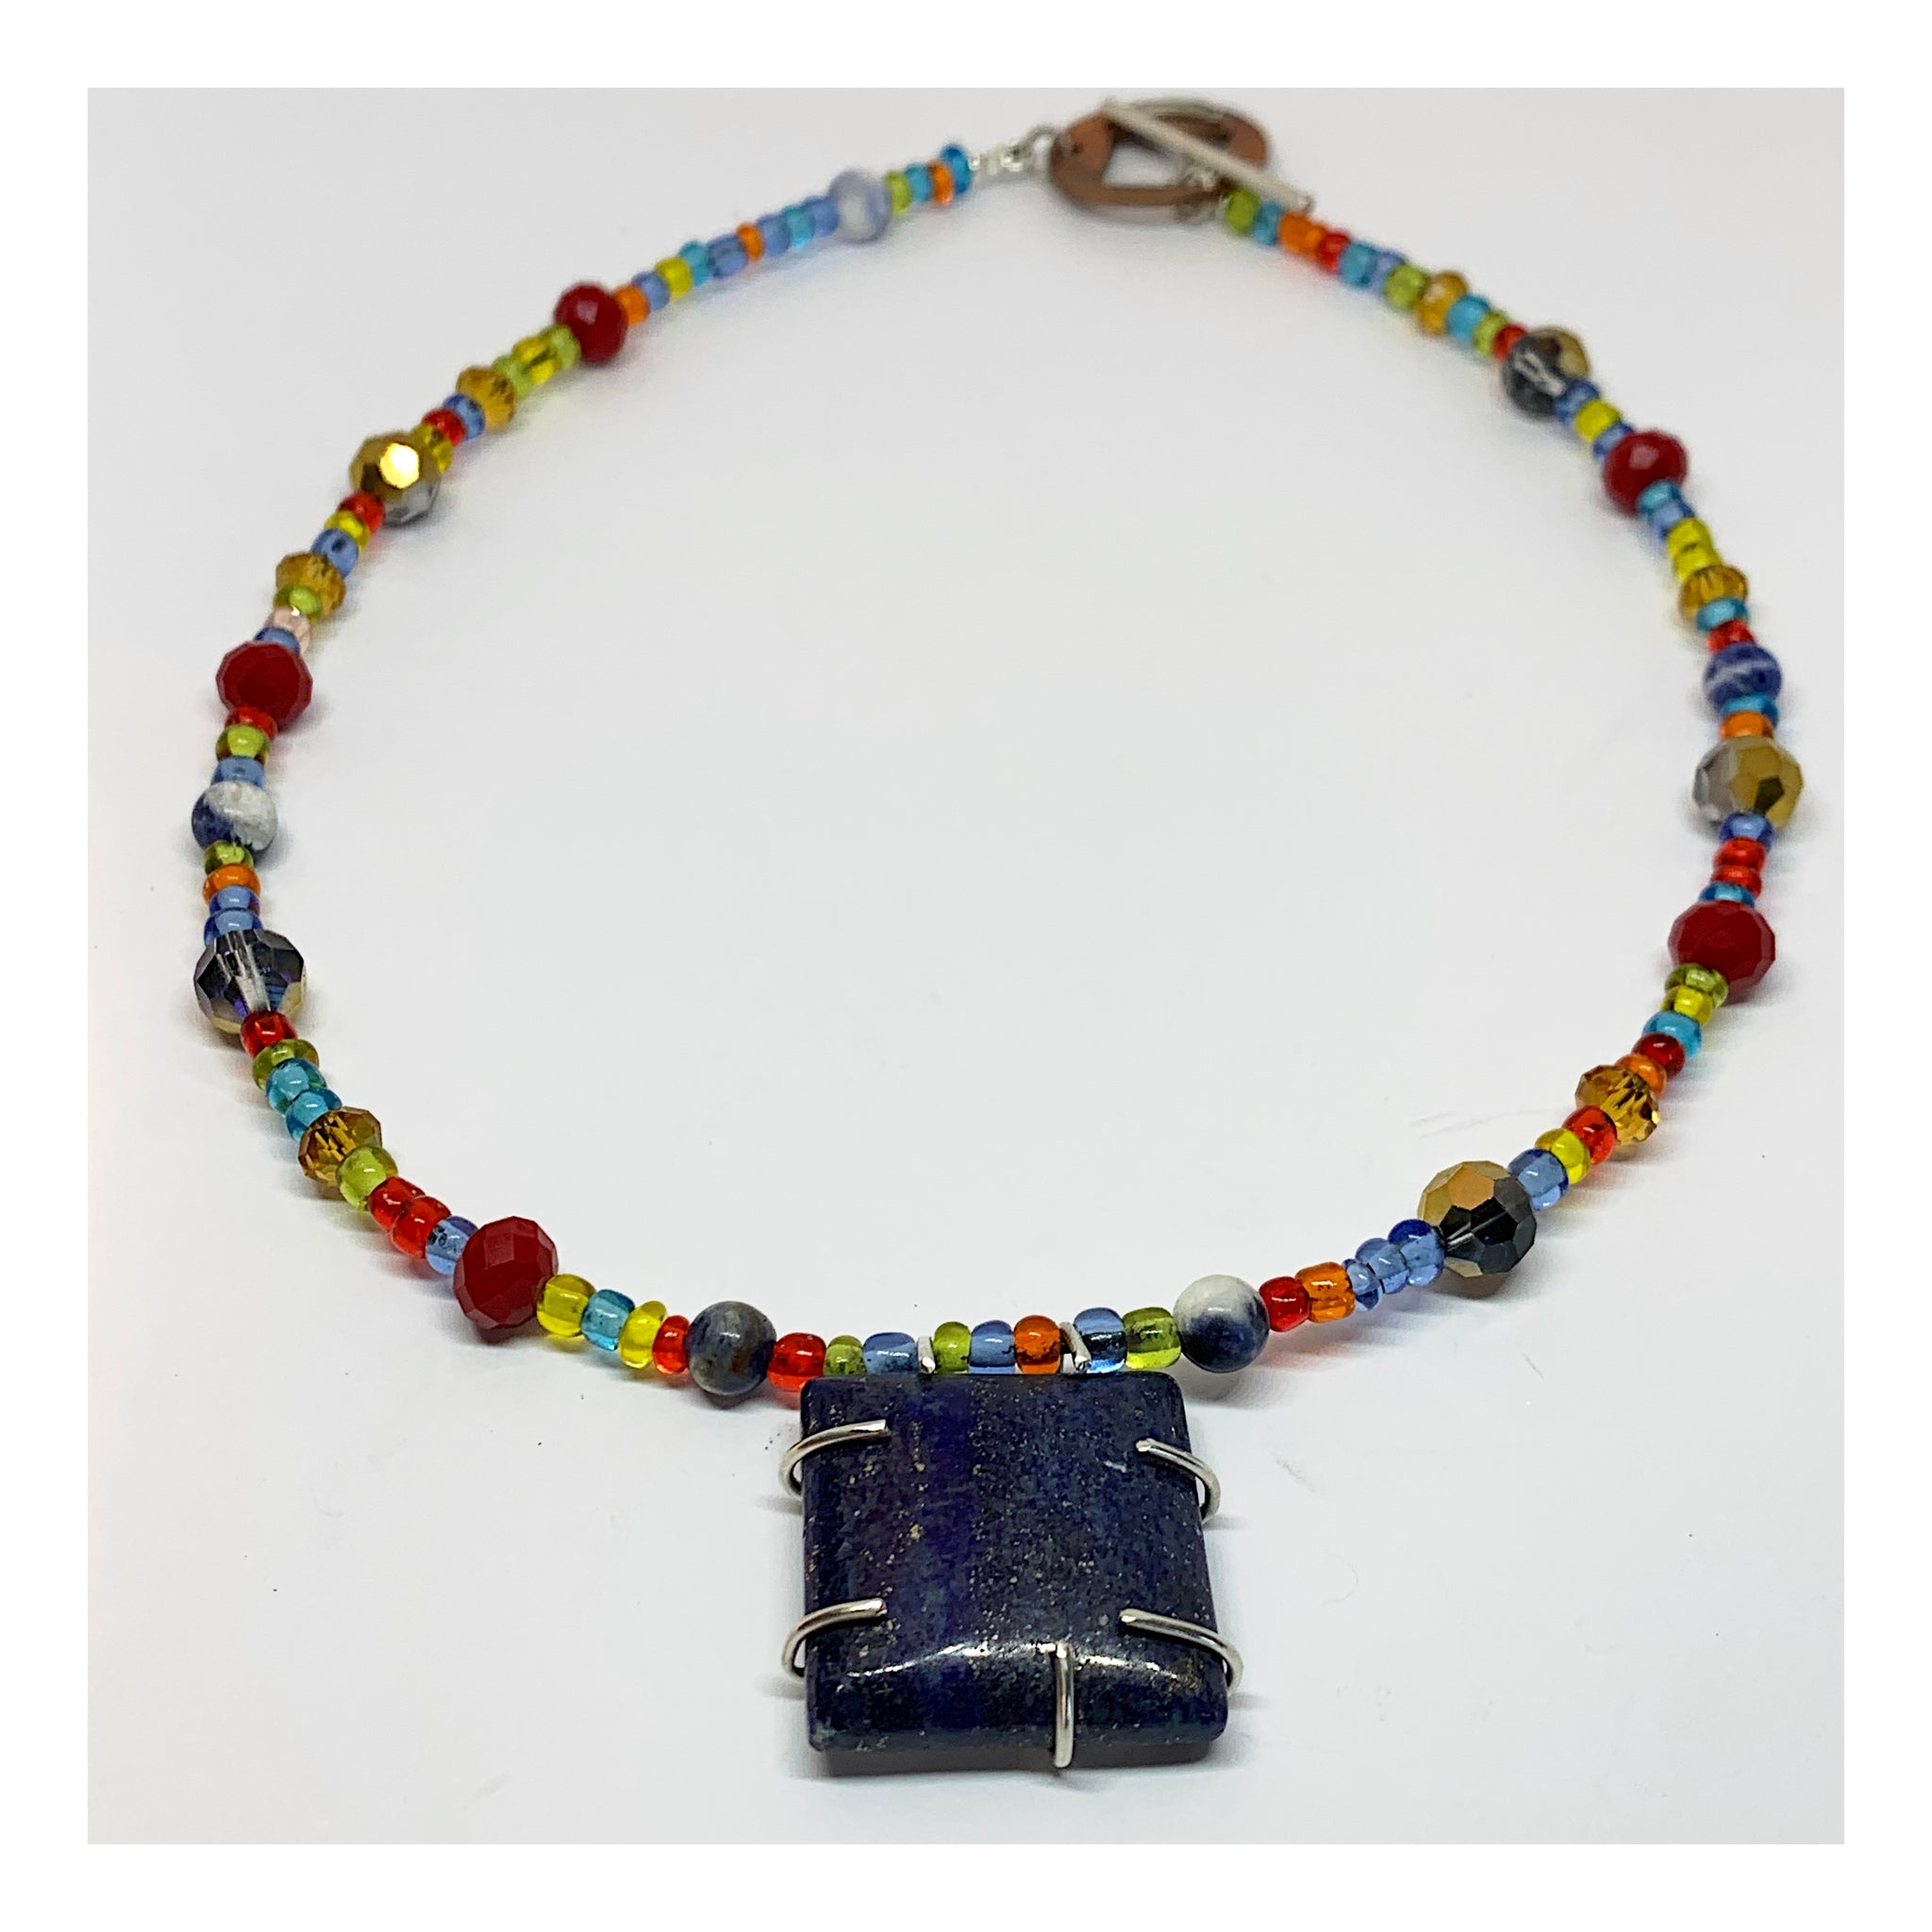 Colorful Bohemian Necklace With Square Lapis Stone